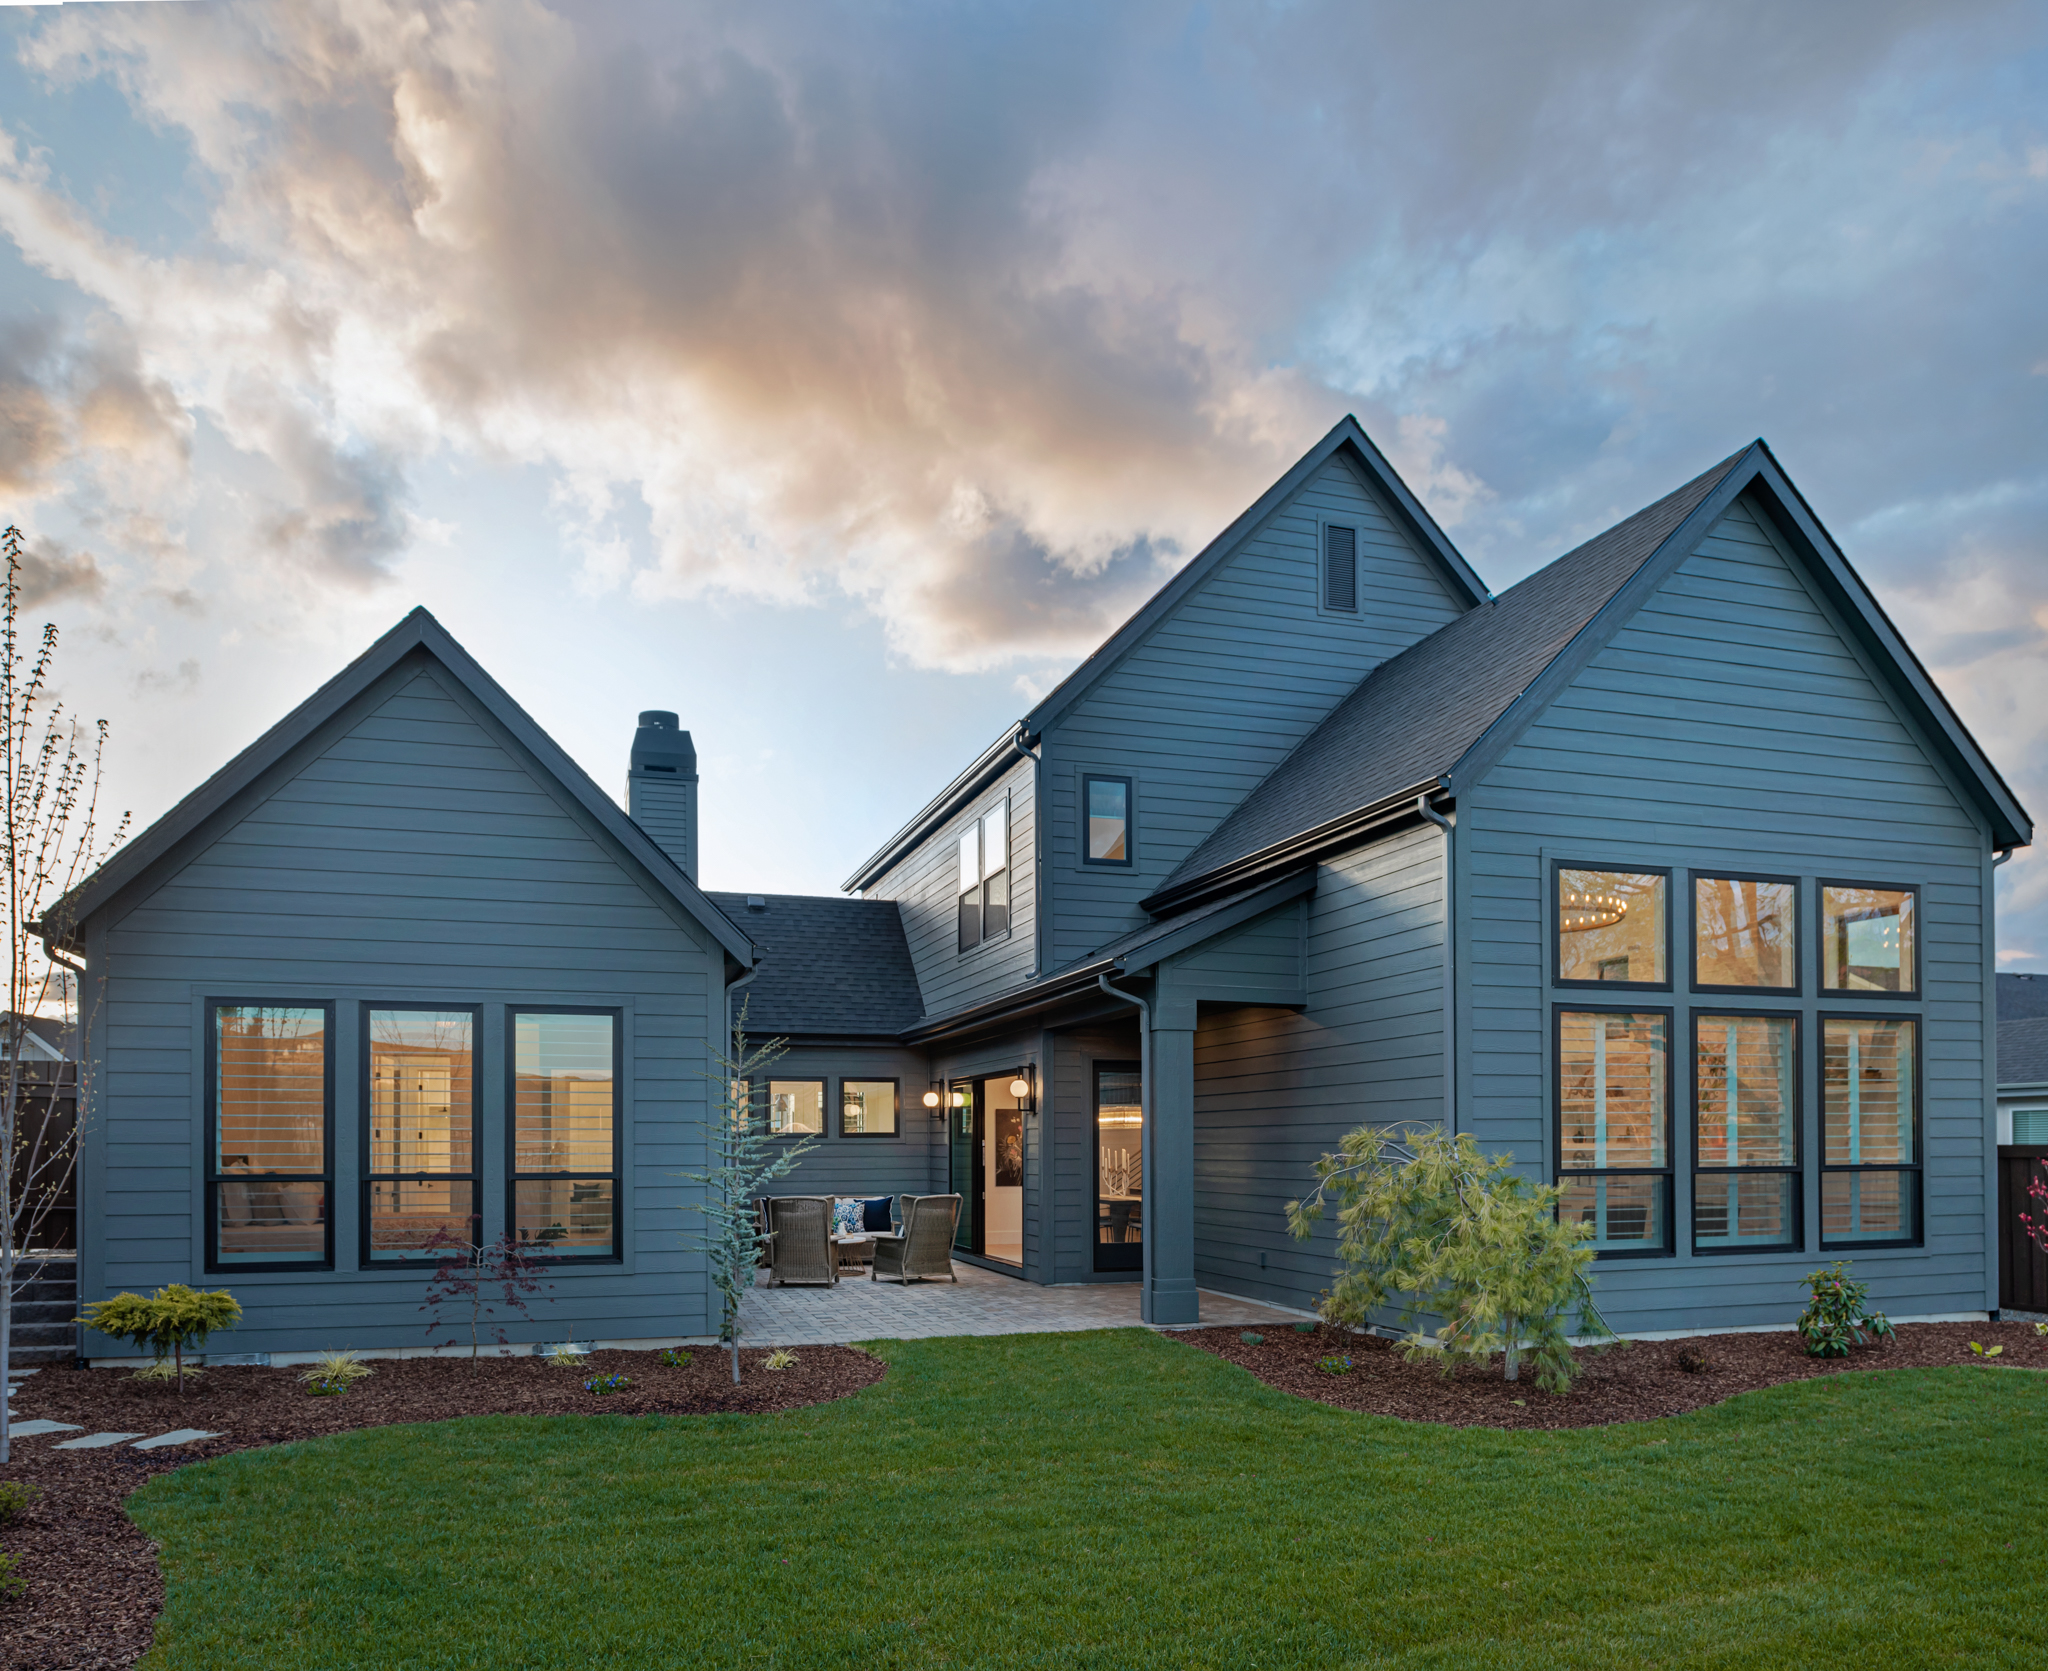 How To Choose The Best Exterior Paint Colors For Your Home Brighton Homes